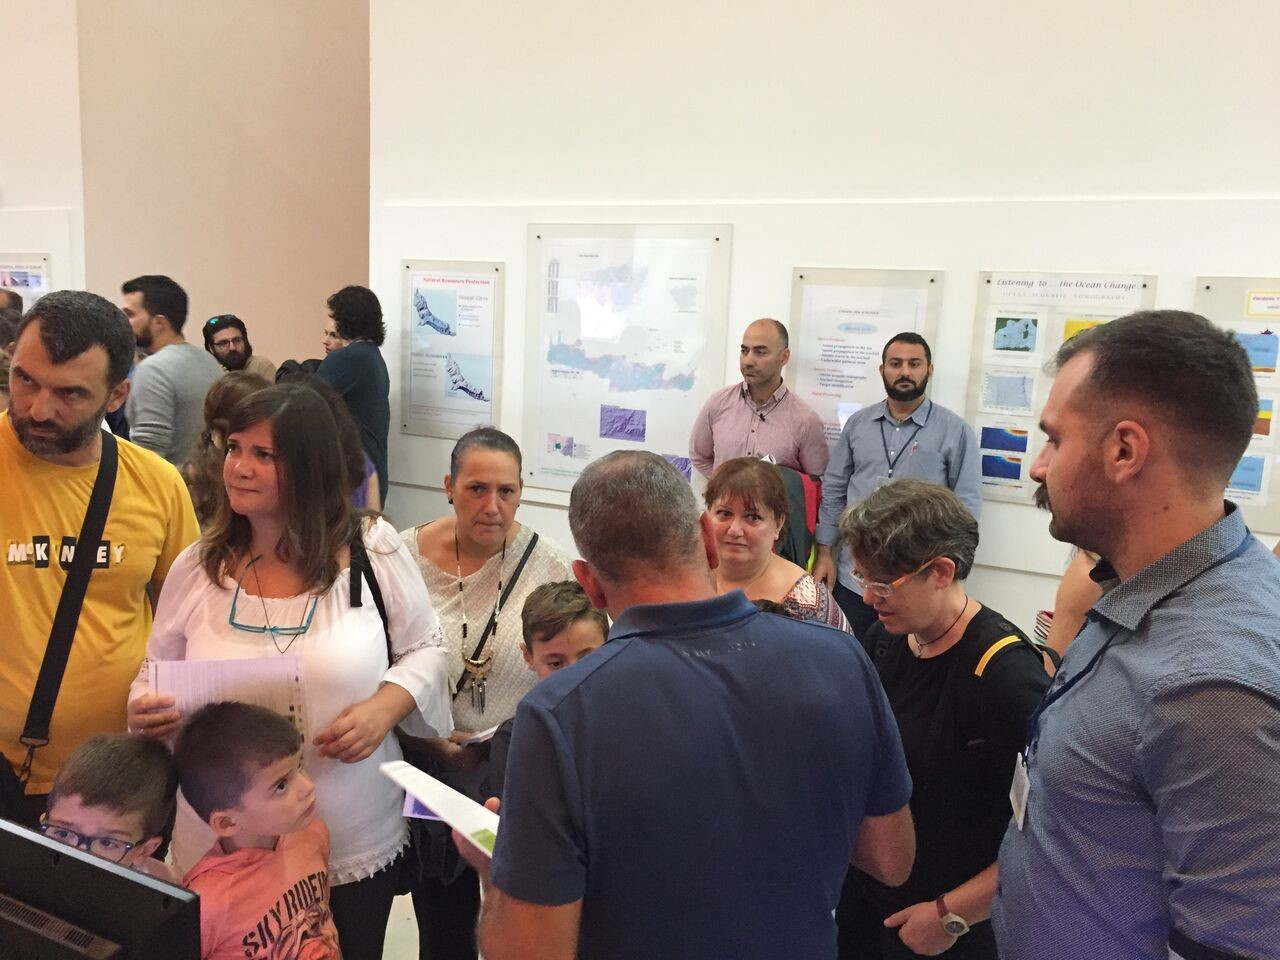 Nektarios Spiridakis and Manolis Panagiotakis discussing the general idea and the uses of URBANFLUXES project for the local community of Heraklion with visitors during the Researchers' Night at FORTH